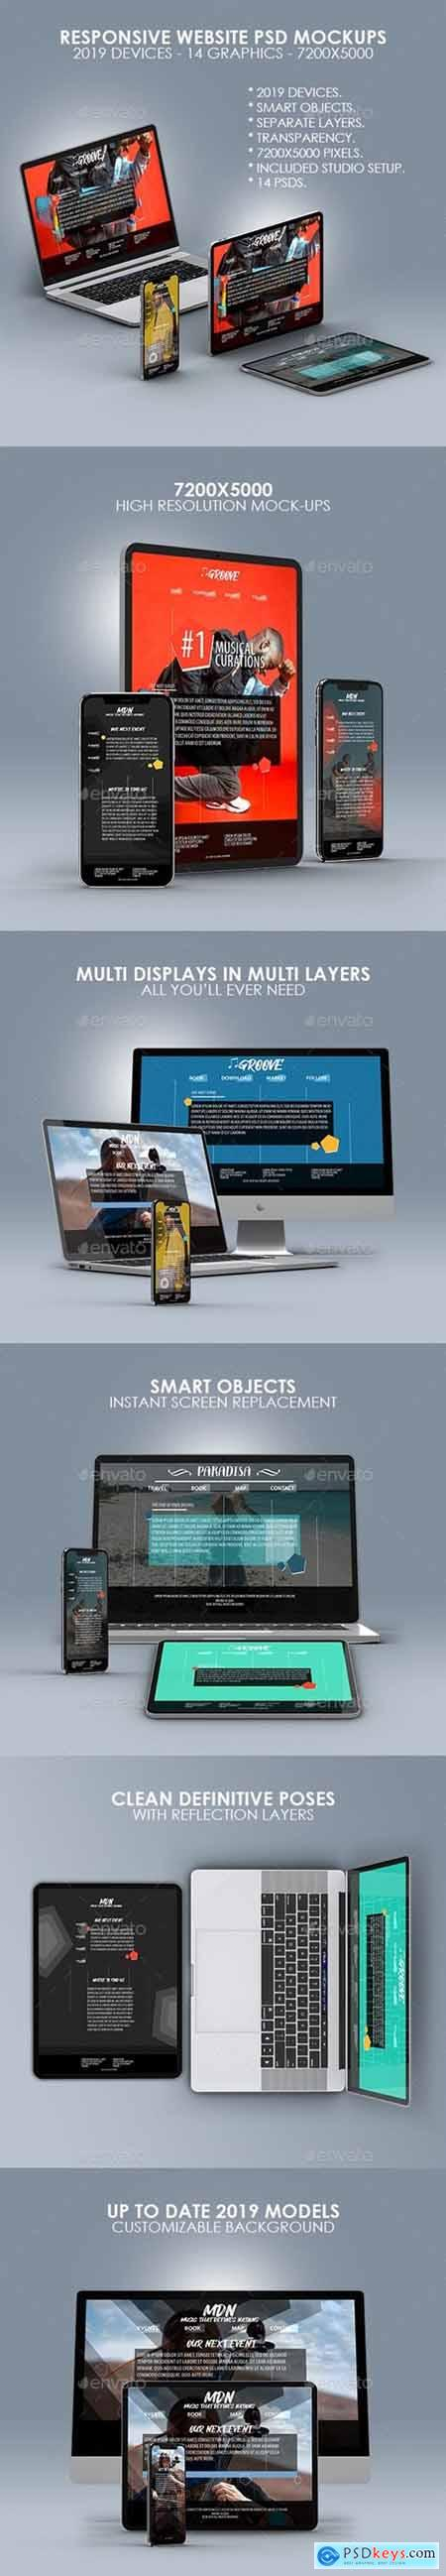 Responsive Website PSD Mock-ups 24723540